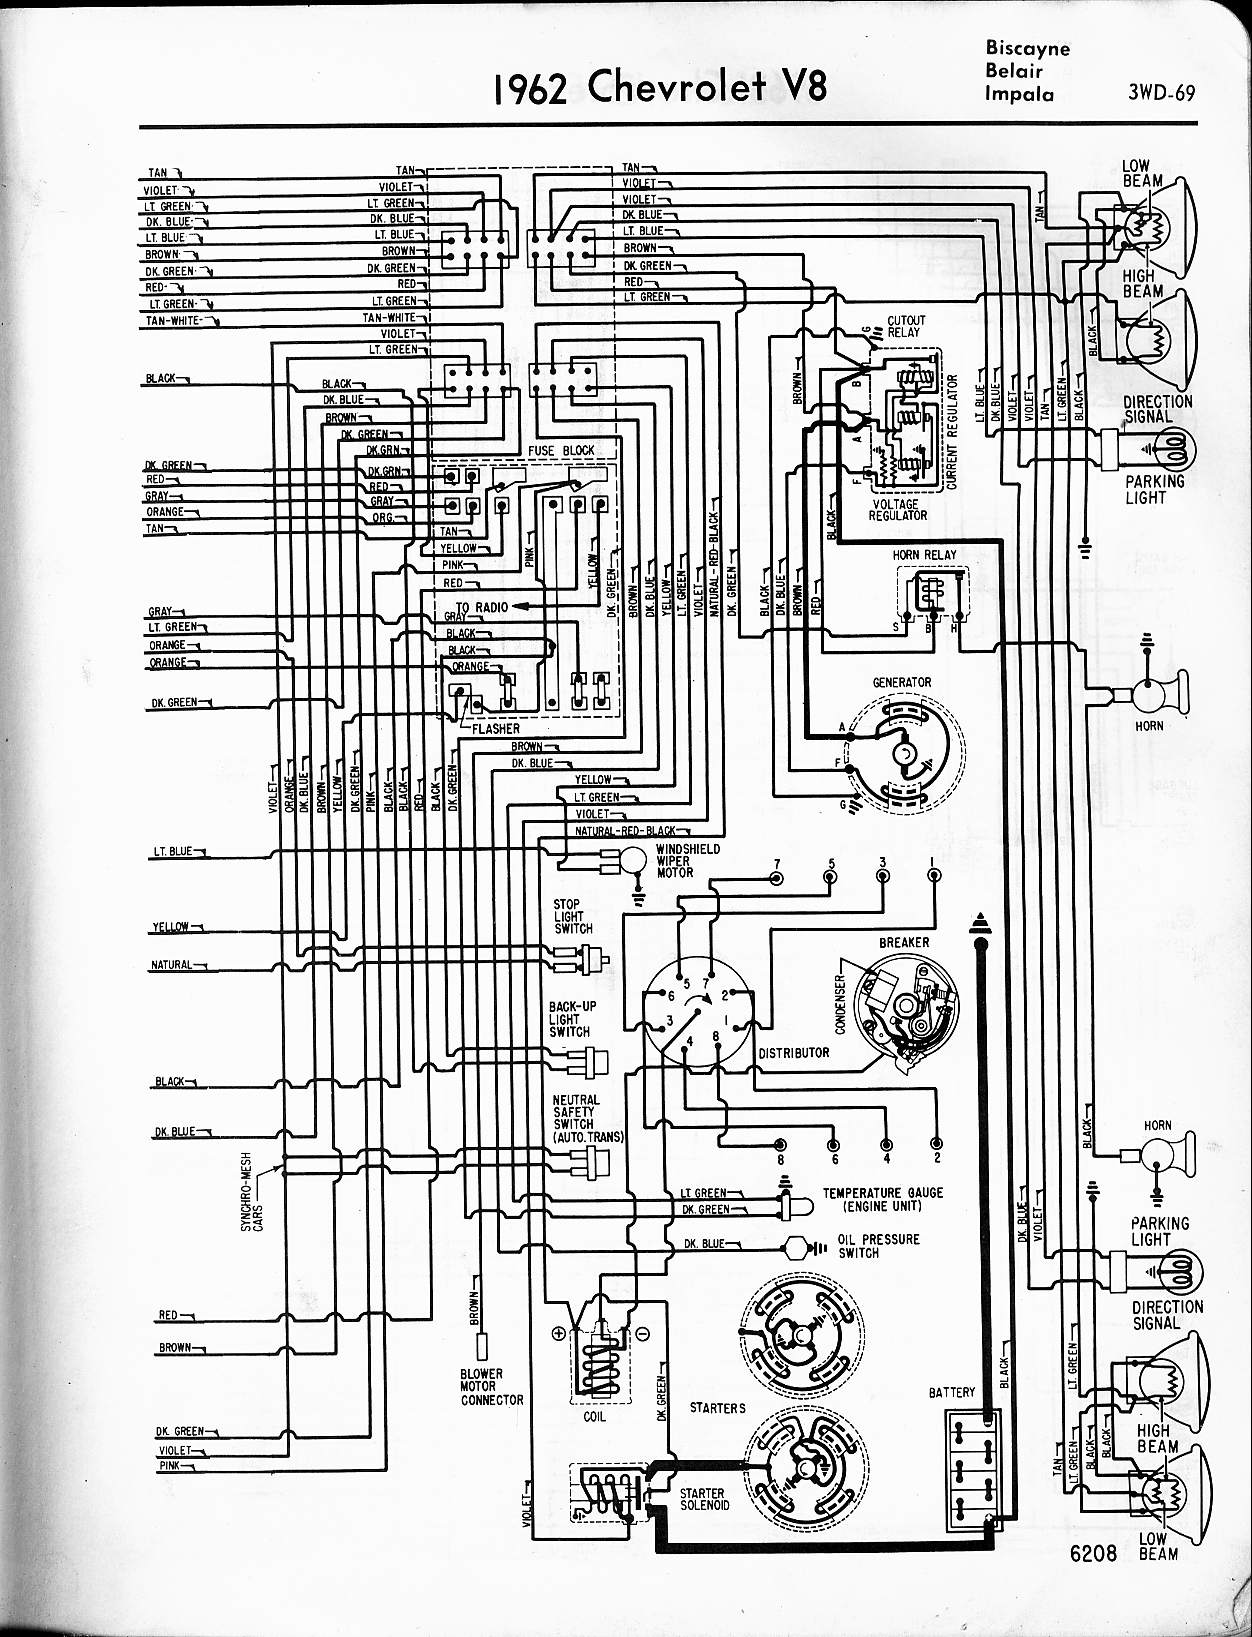 1985 Chevy Truck Wiring Diagram Free - Wiring Diagram For Light Switch •